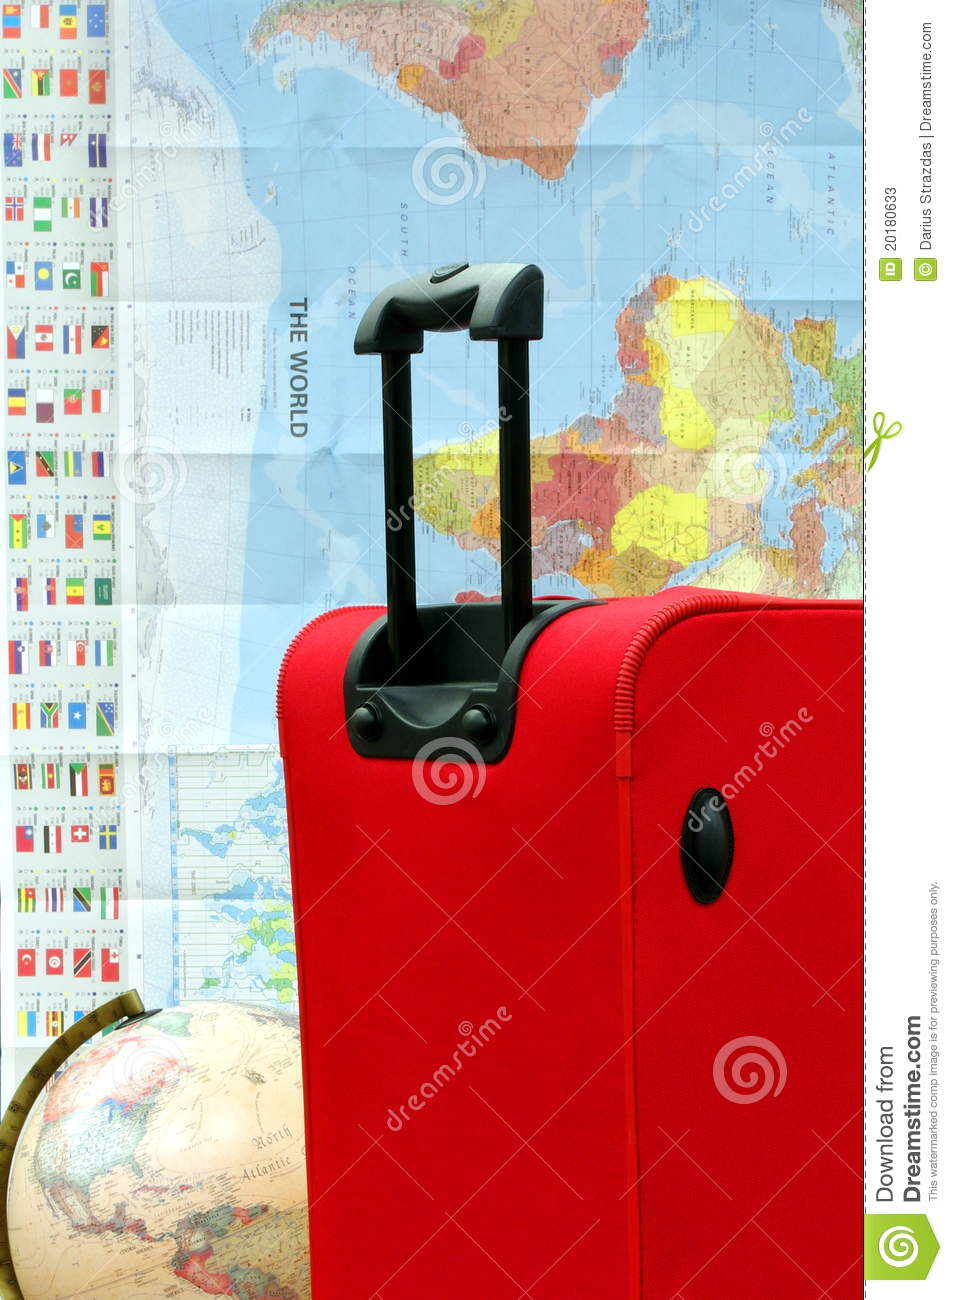 Ready to travel around the world luggage in the background of world